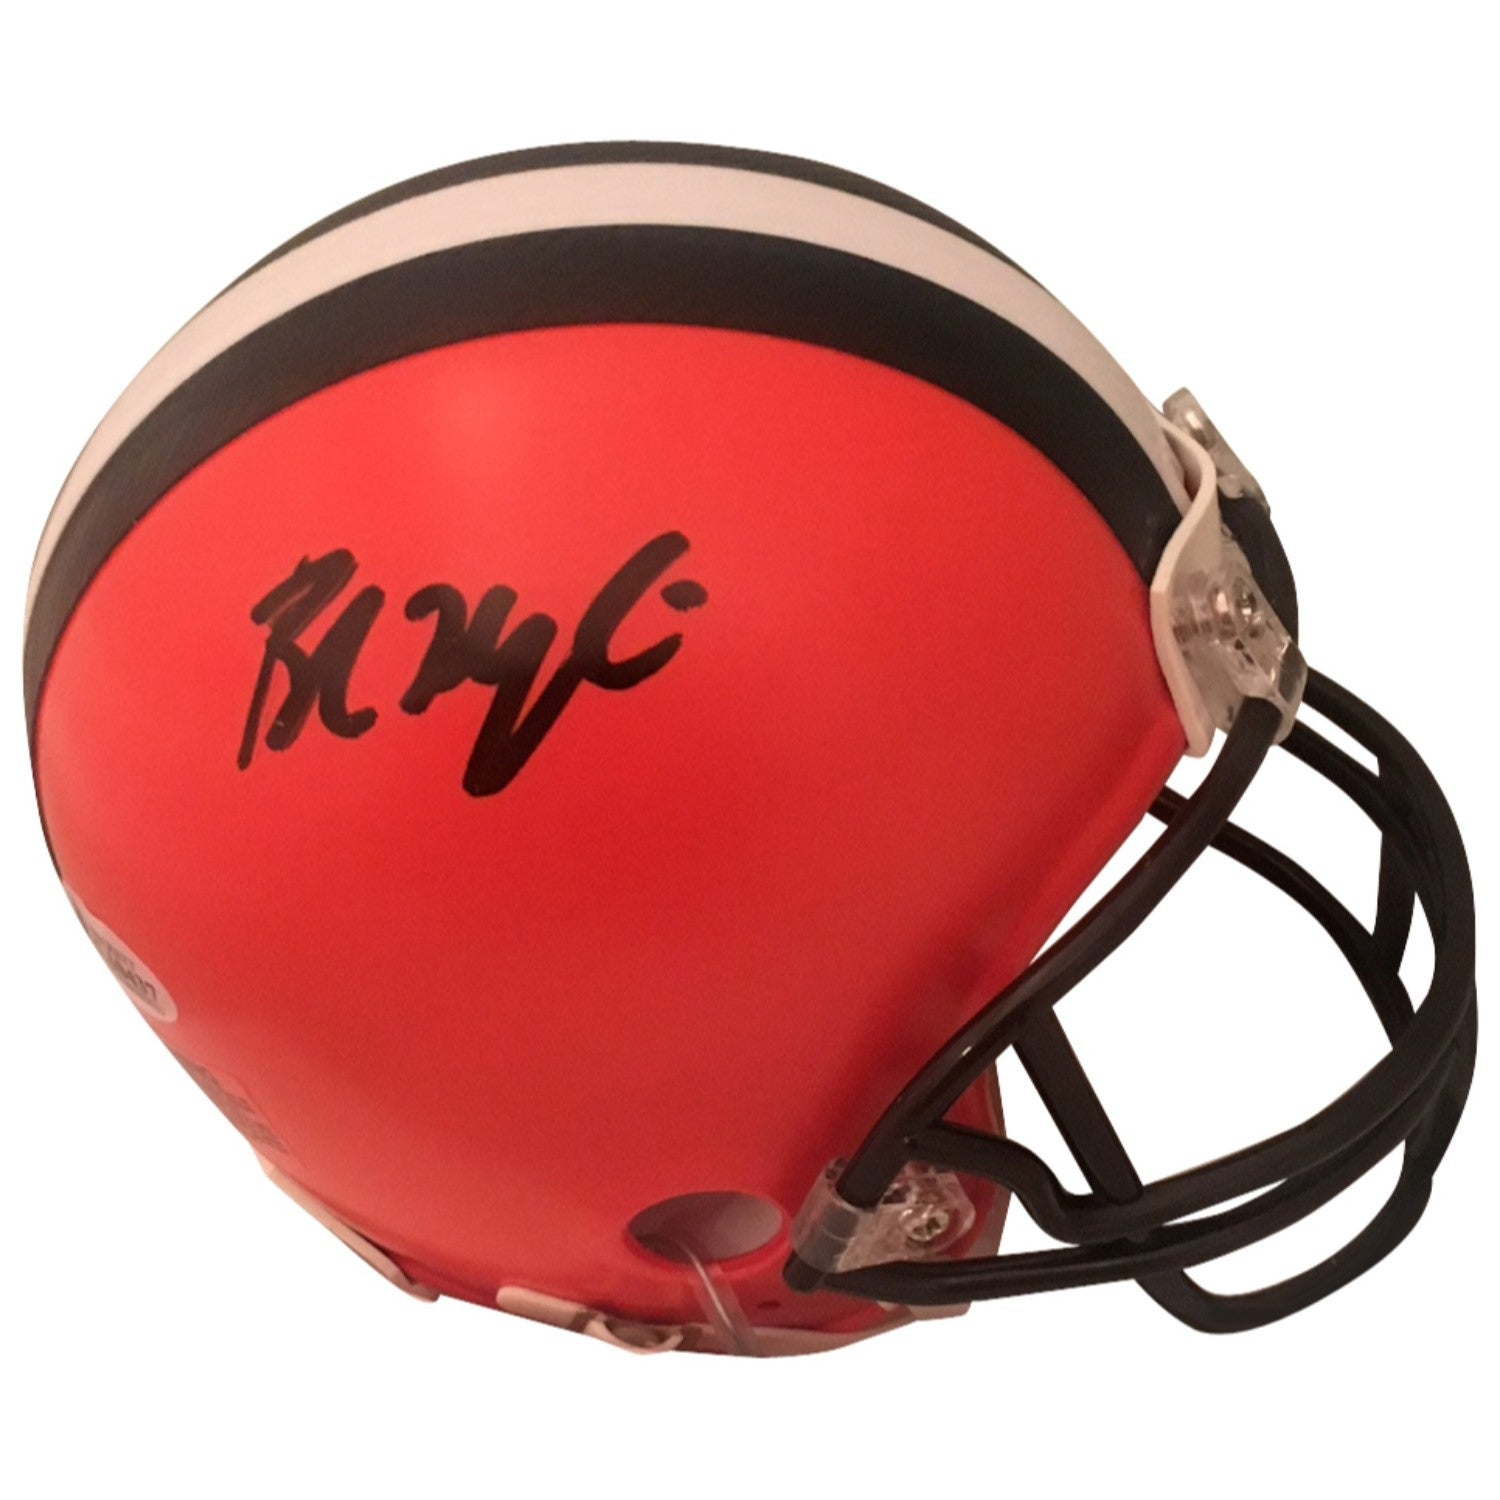 eca48f0d62f Shop Baker Mayfield Autographed Cleveland Browns Signed Football Mini  Helmet Beckett COA - Free Shipping Today - Overstock - 22390194